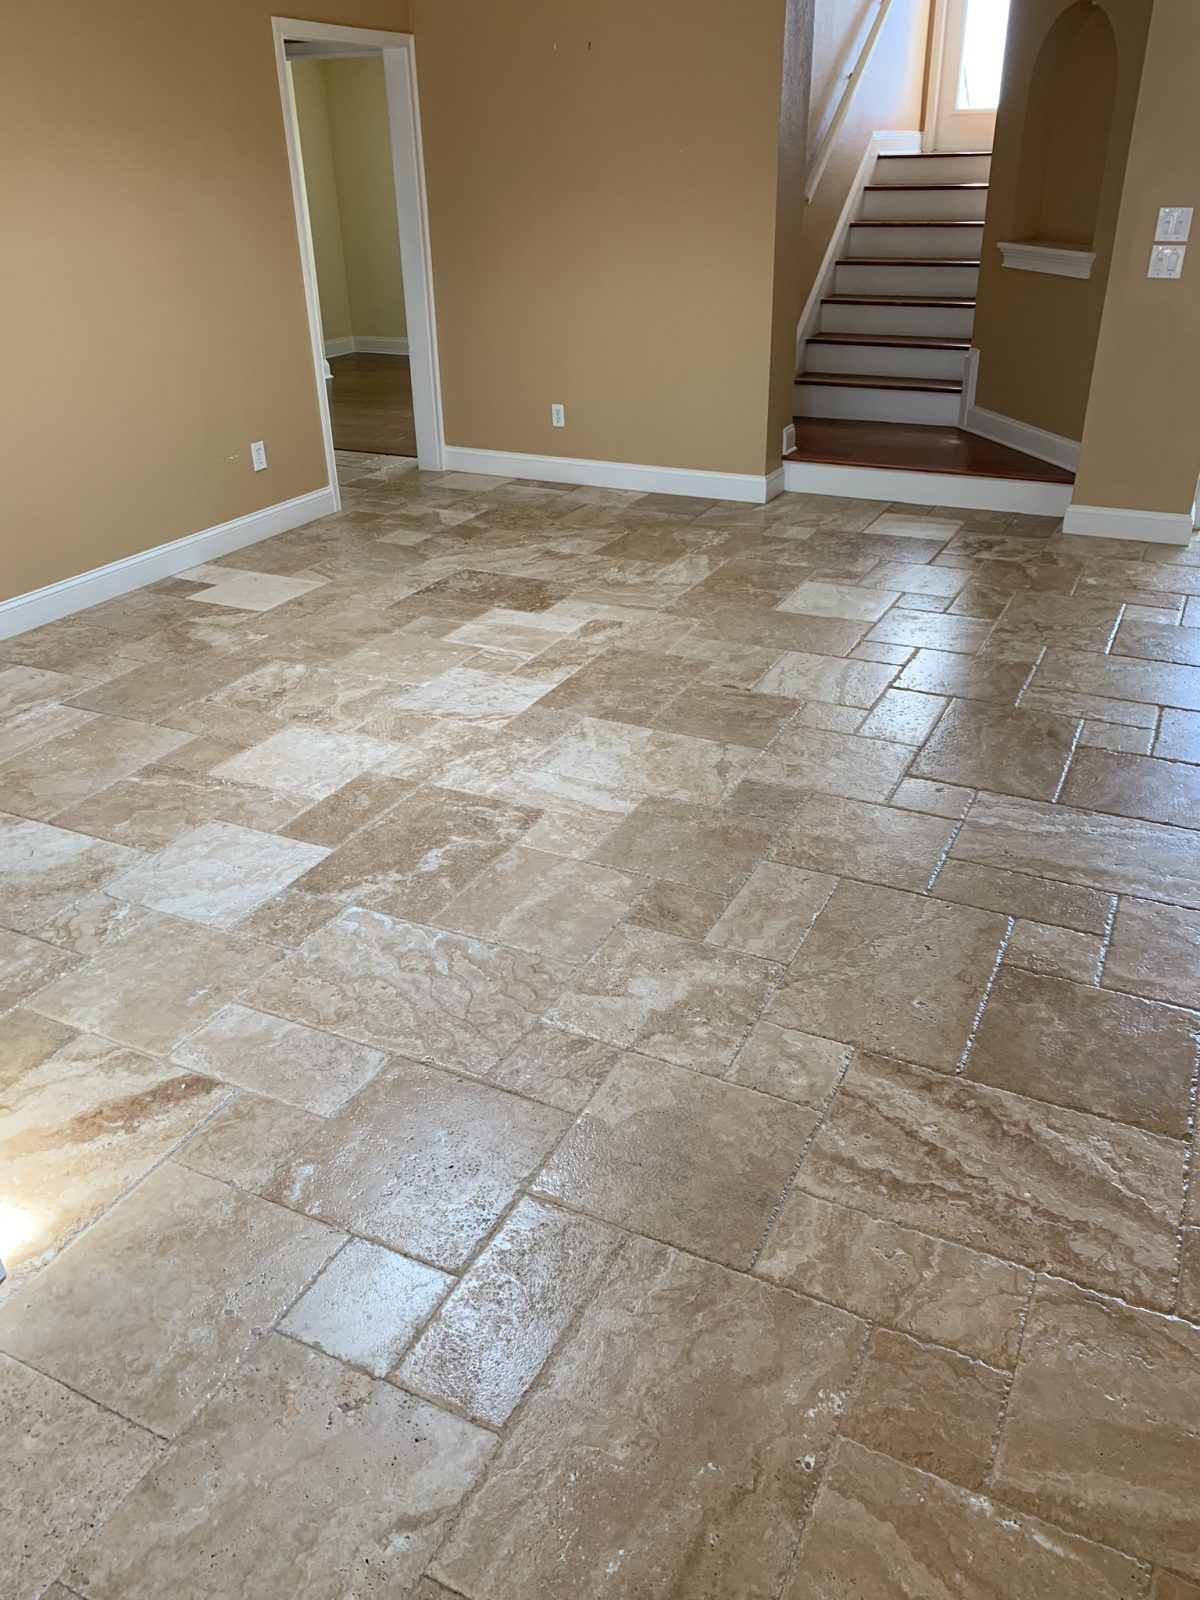 Professional Tile & Grout Cleaning Safety Harbor Florida by Howards Cleaning Service